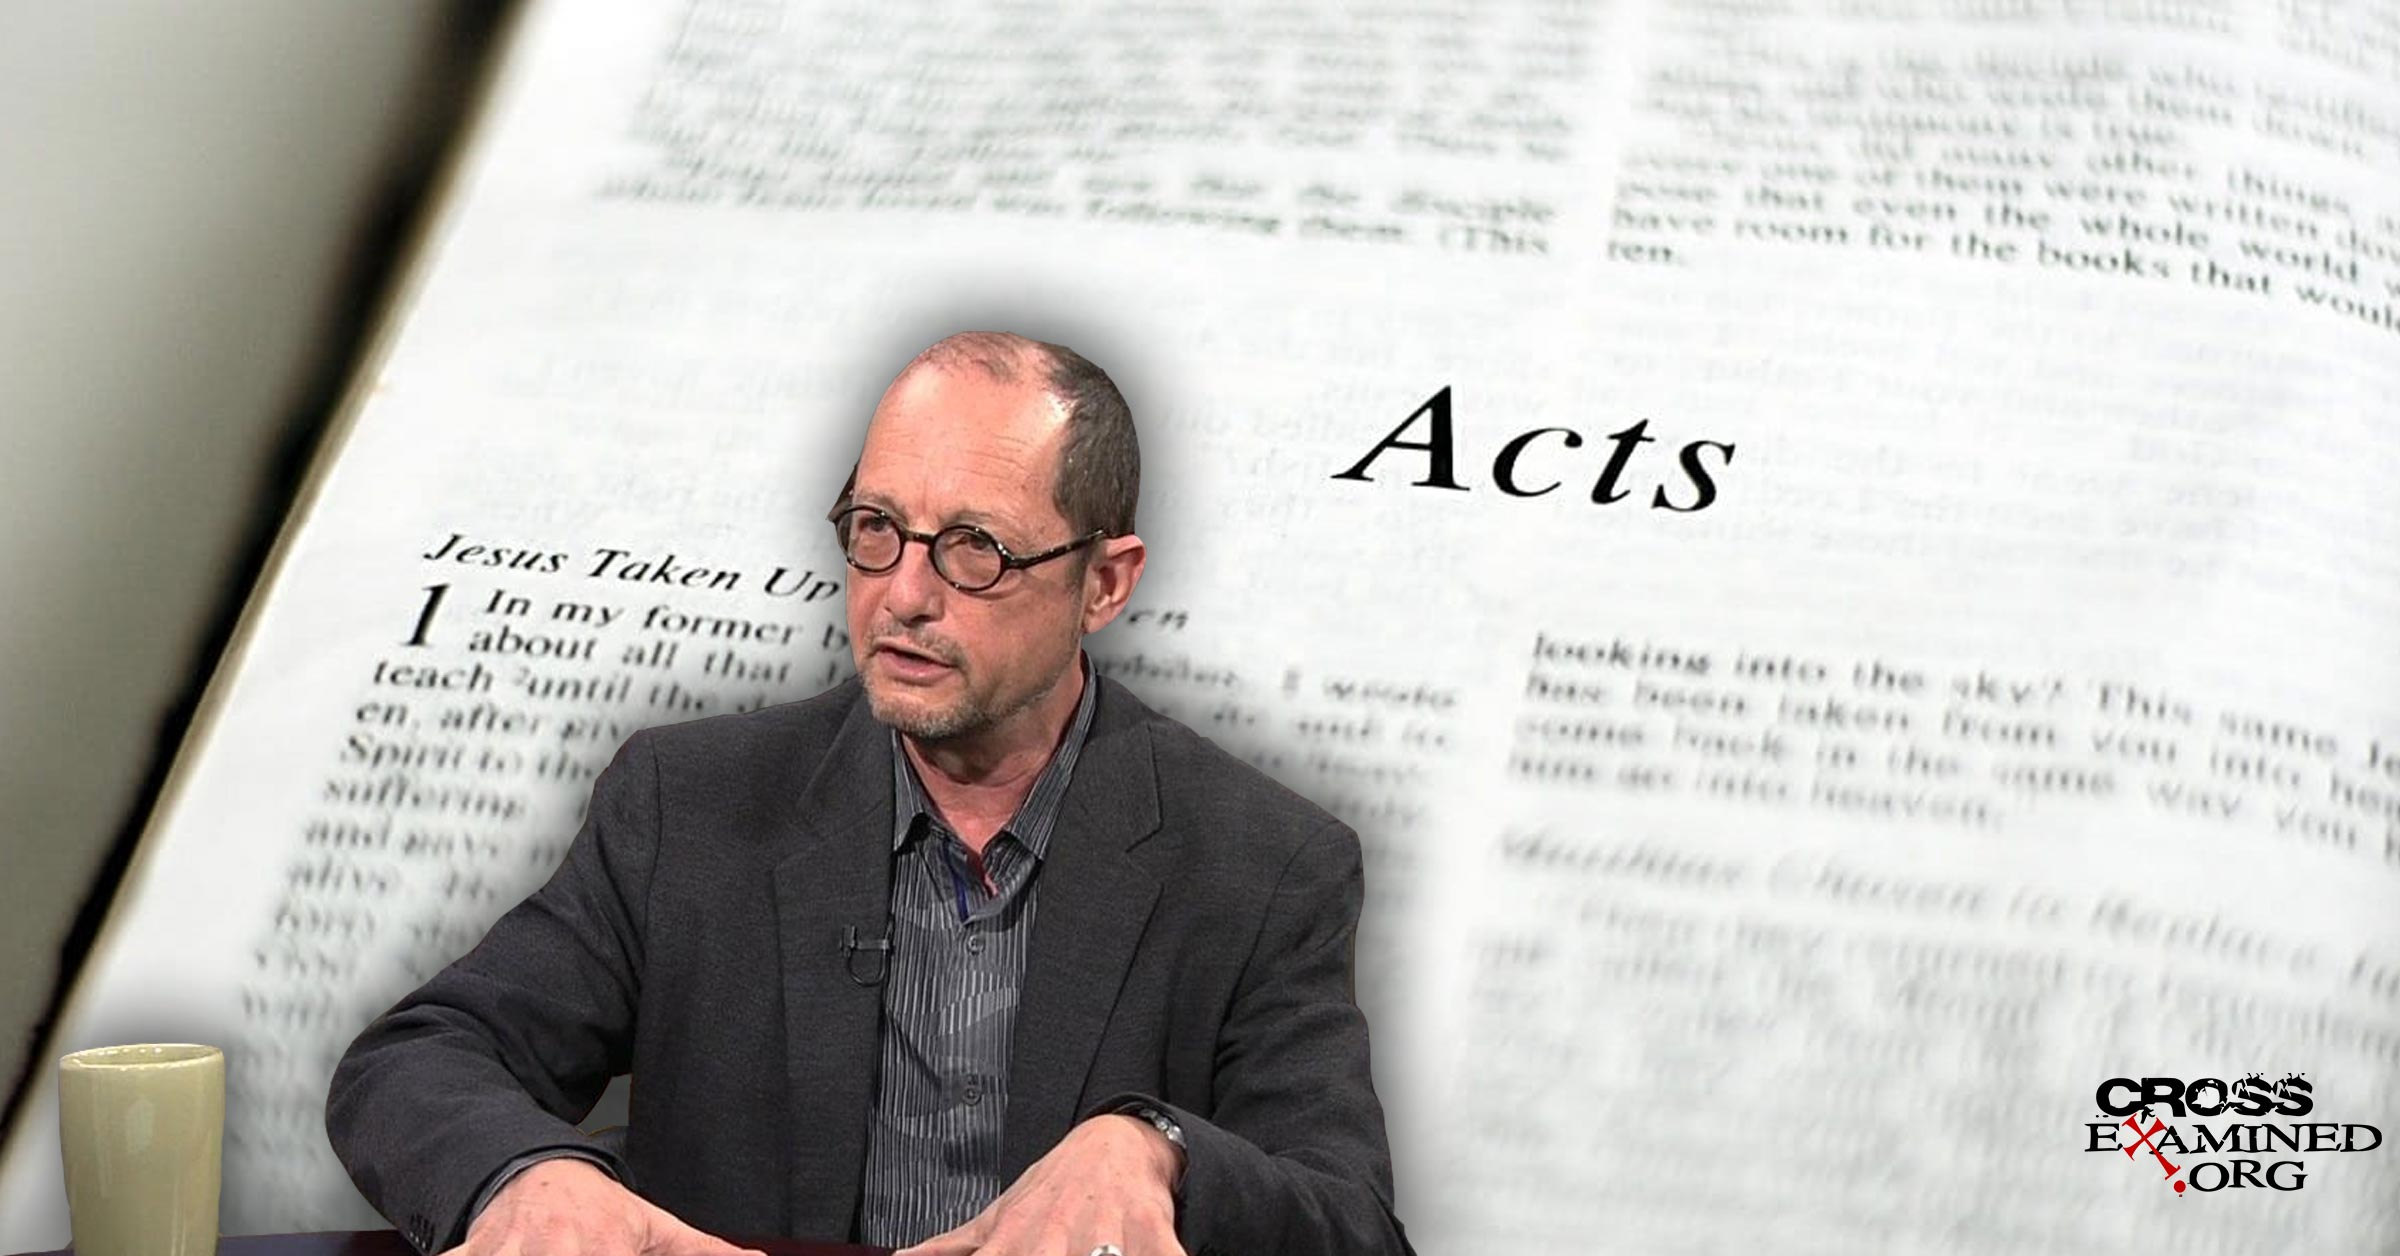 Is Bart Ehrman Right When He Says That Acts Contradicts Paul's Letters?